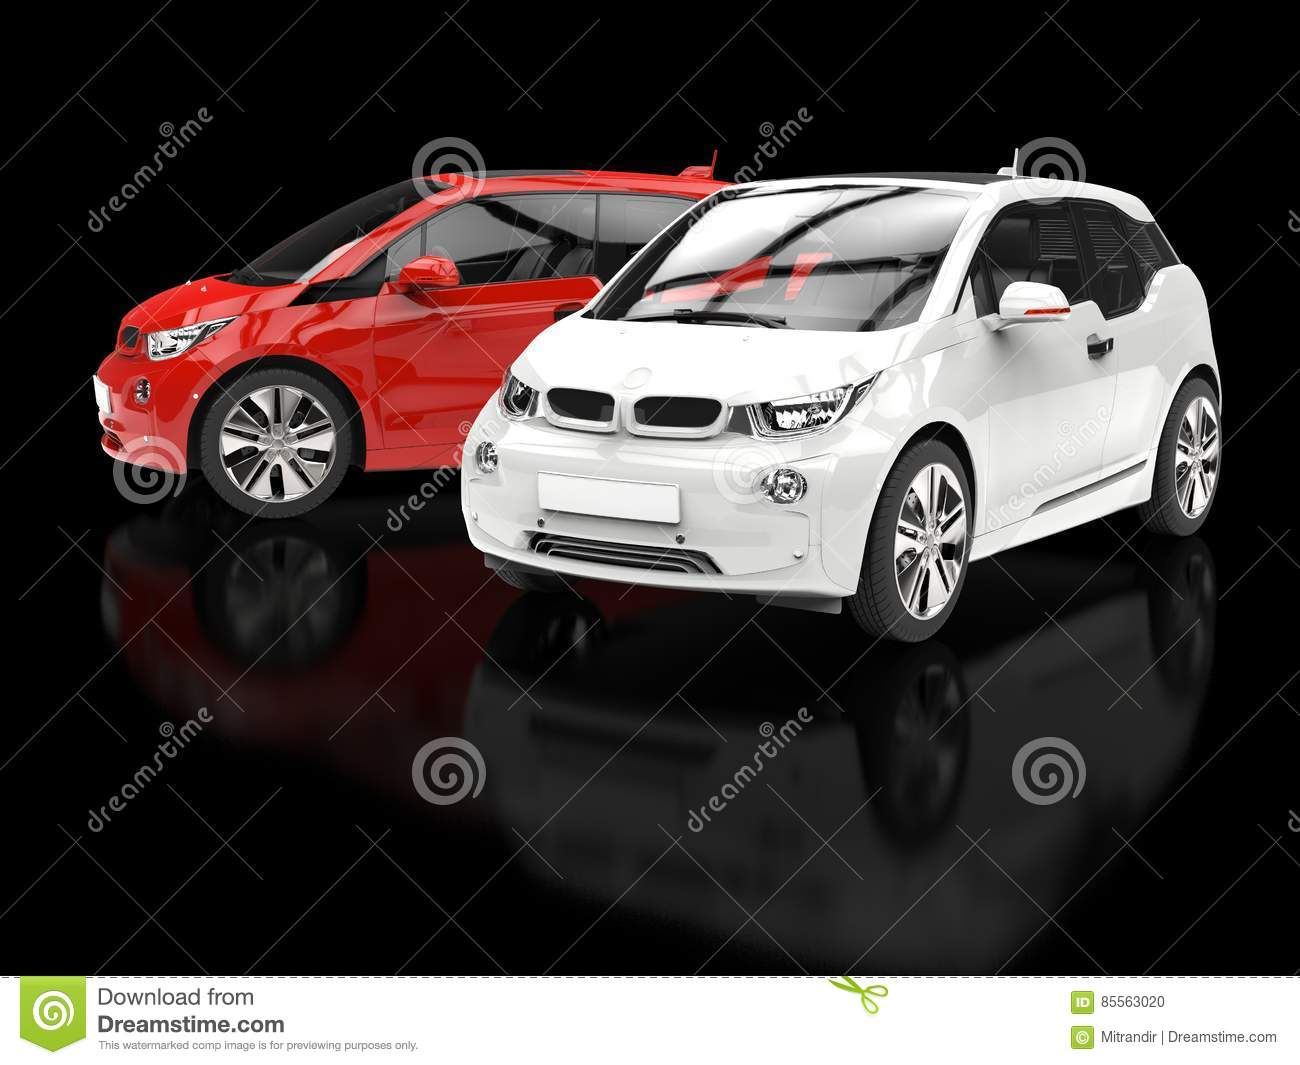 red and white small cars on black background stock illustration image 85563020. Black Bedroom Furniture Sets. Home Design Ideas